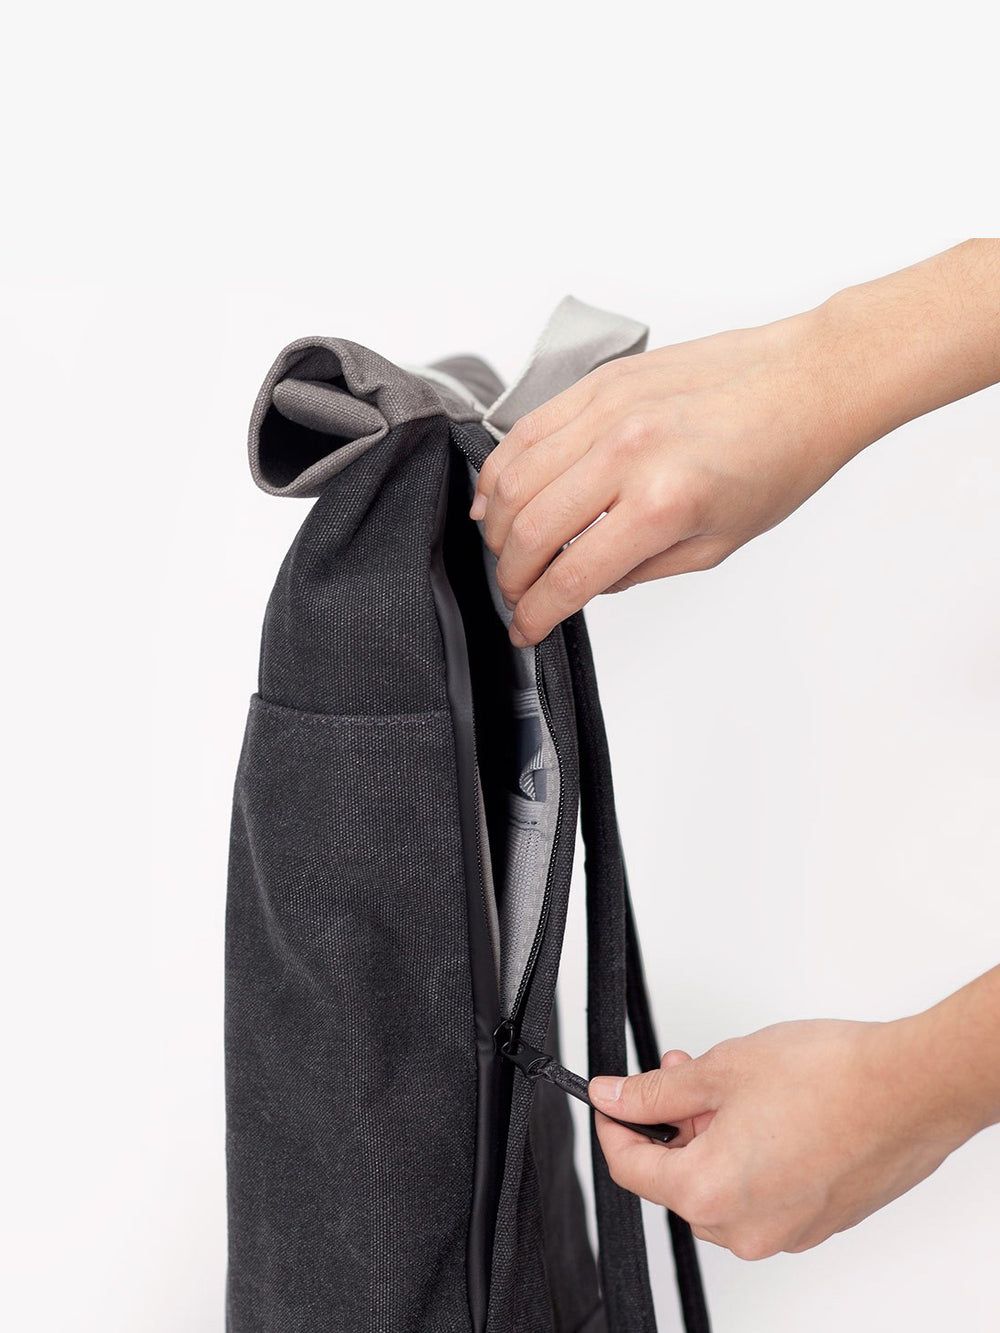 A side zip allows access to the main compartment of Hajo Backpack